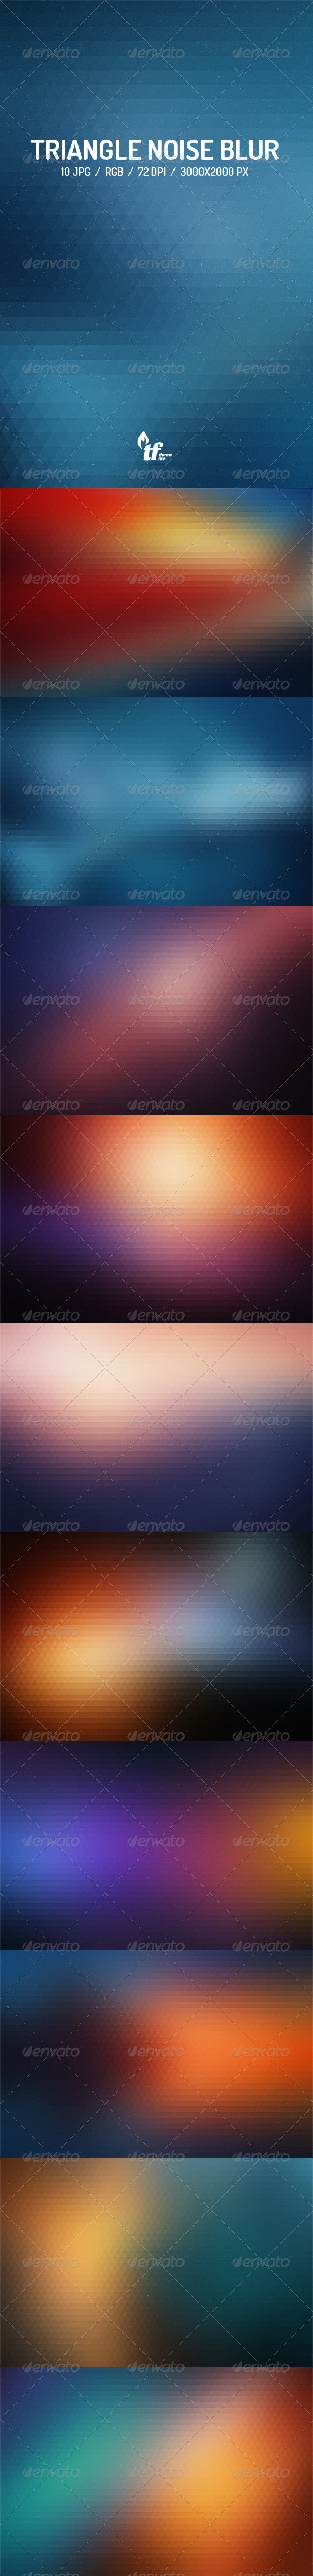 GraphicRiver Triangle Noise Blur Backgrounds 8625410